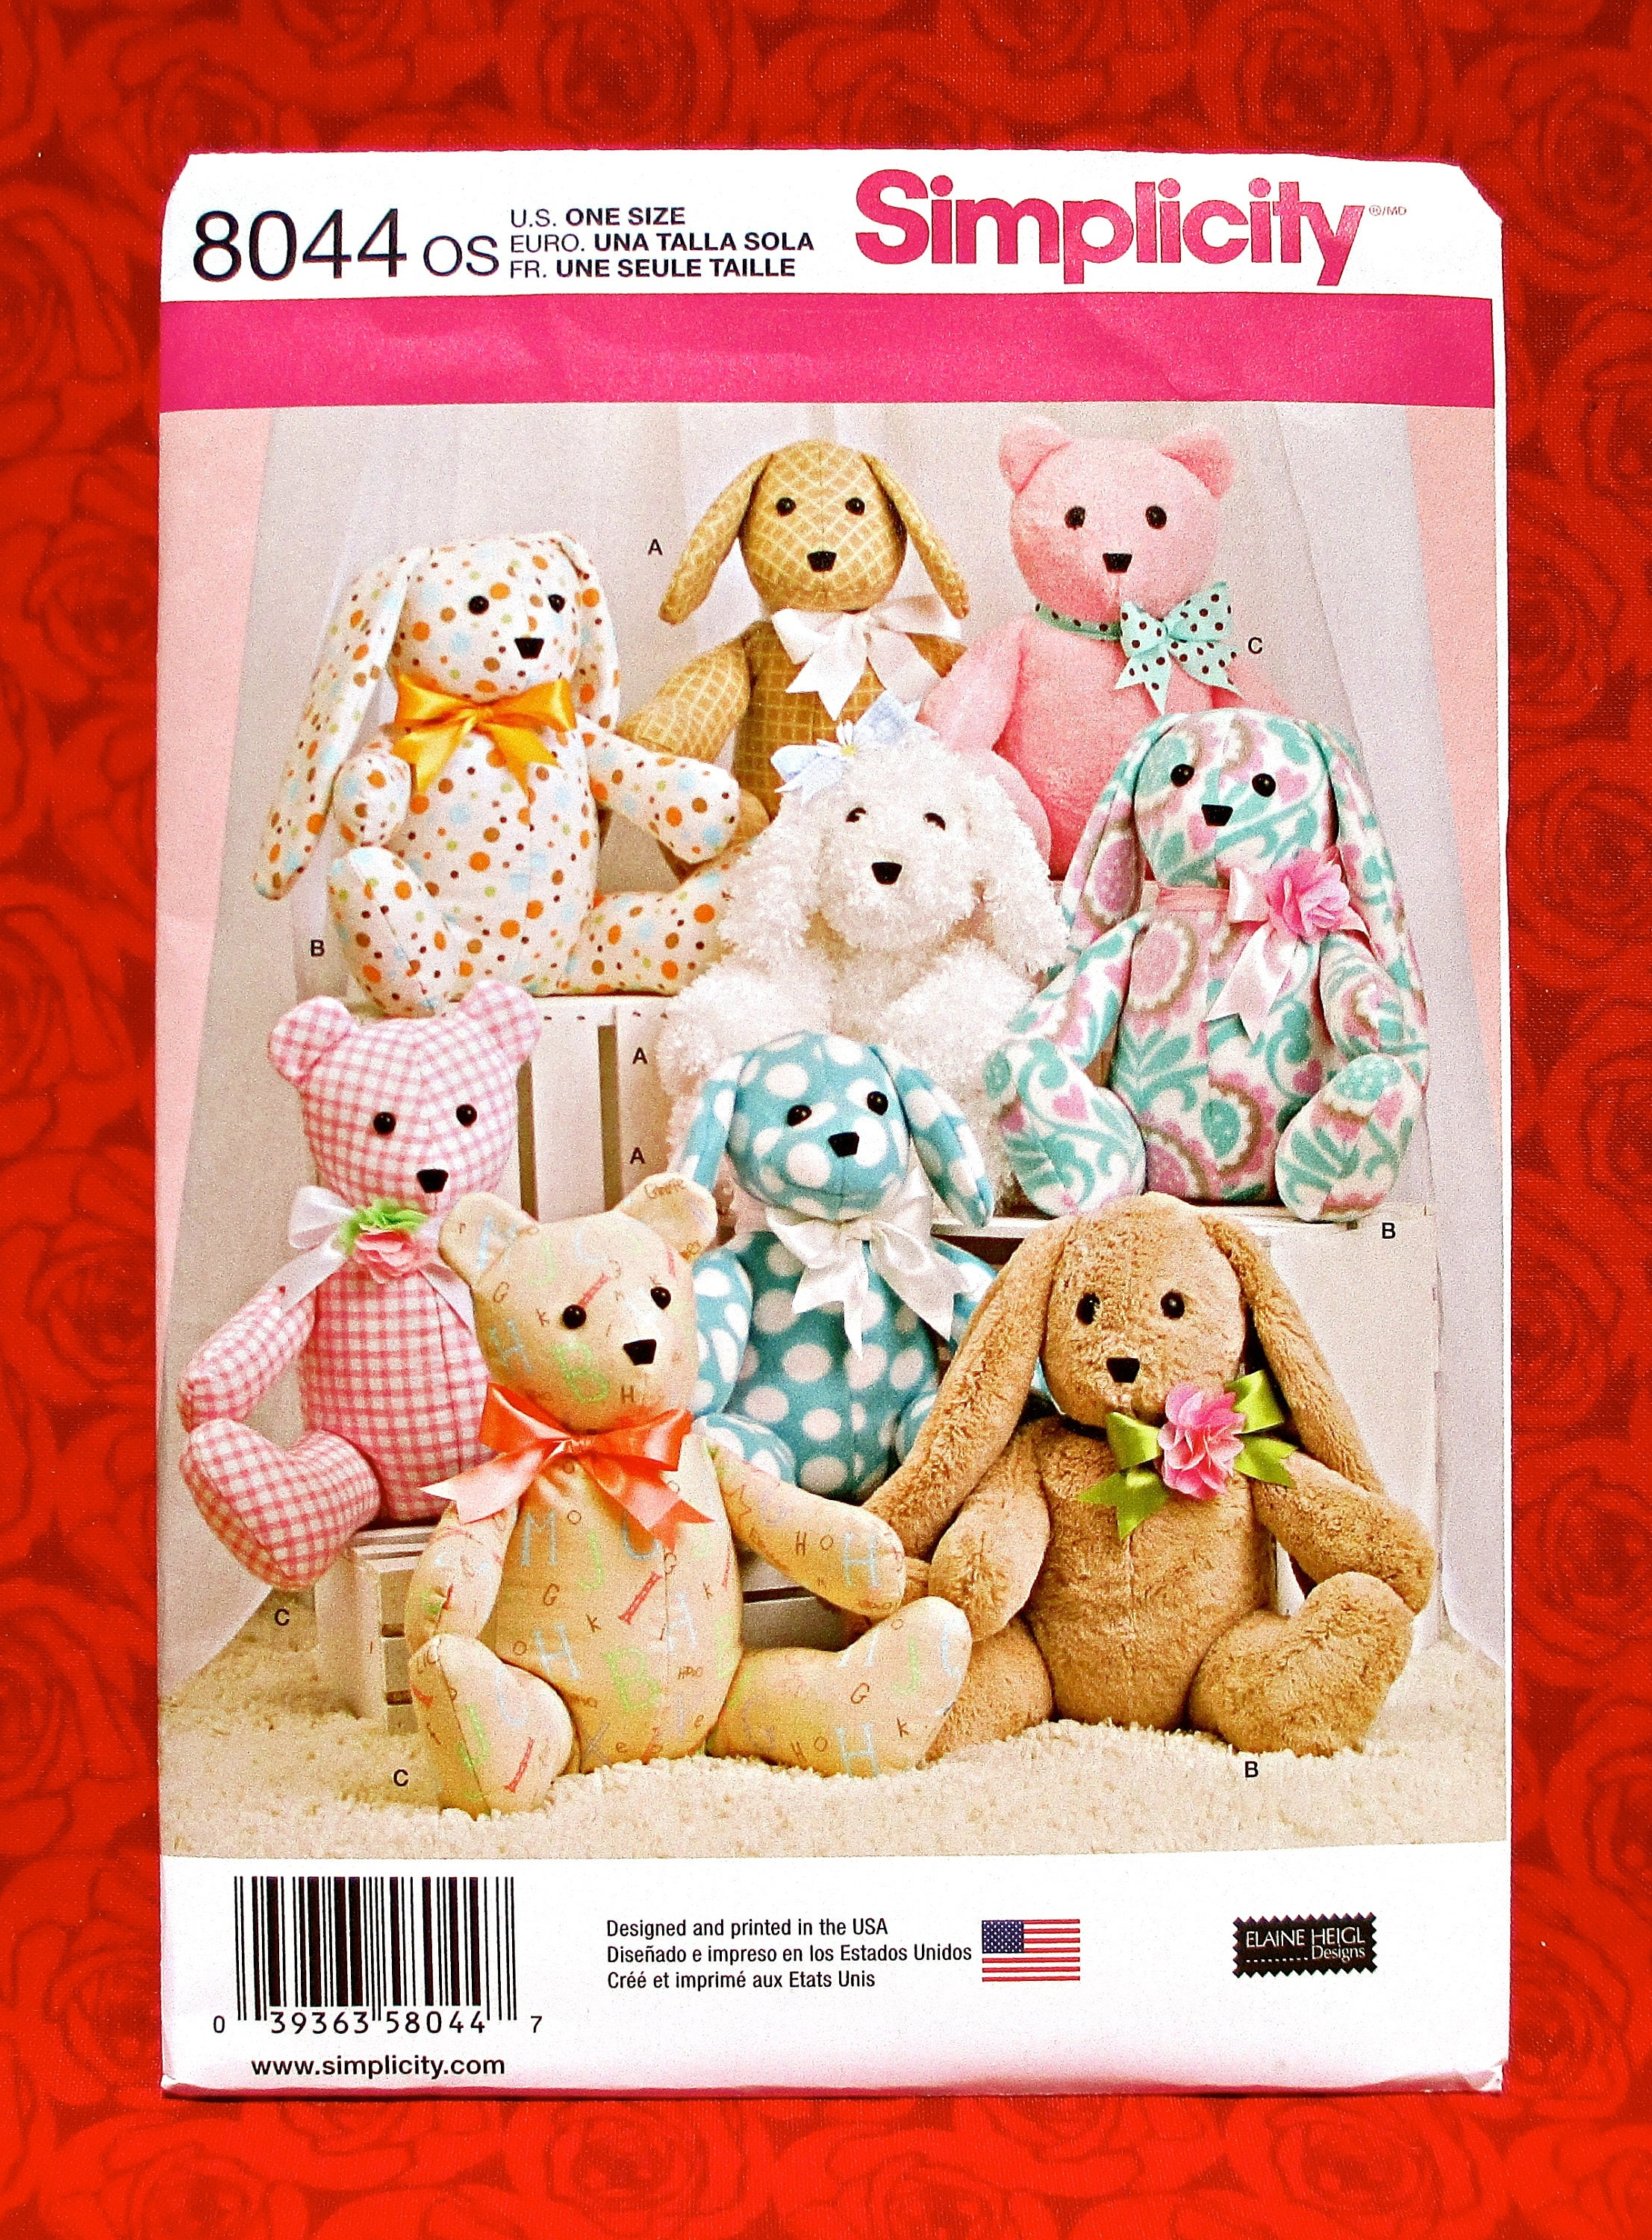 Simplicity Sewing Pattern Soft Toy 8044 OS